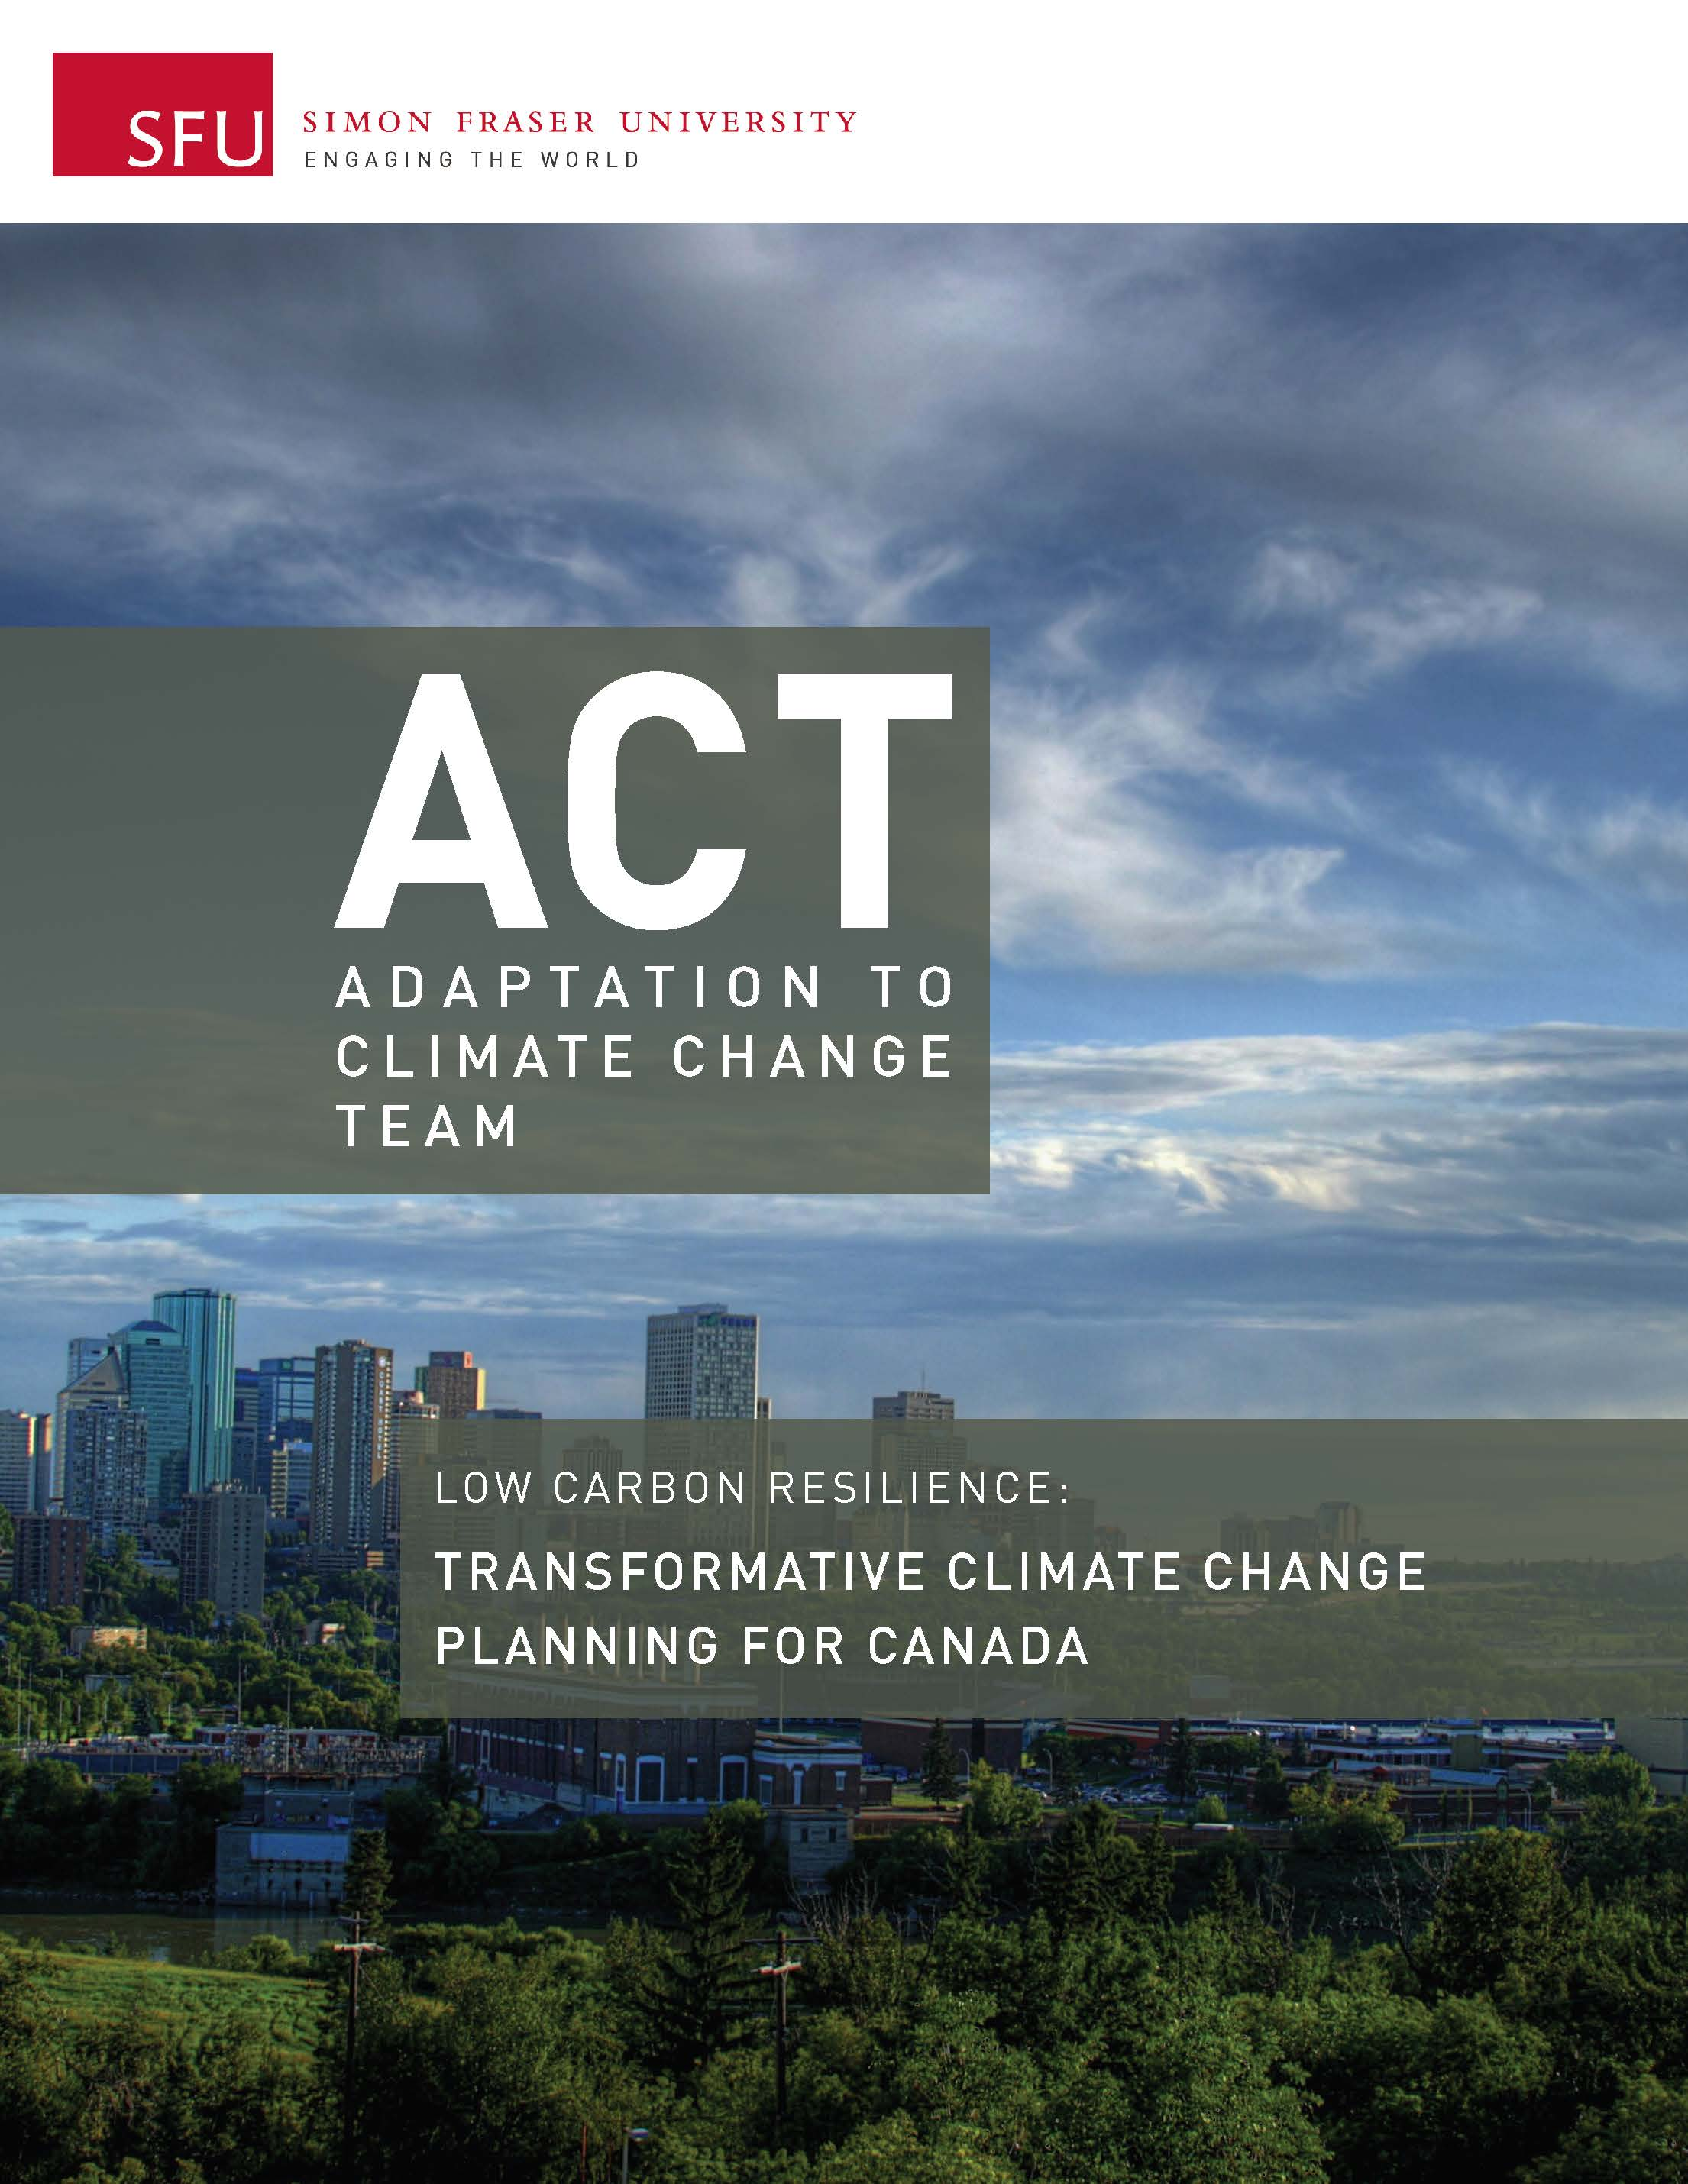 LOW CARBON RESILIENCE: TRANSFORMATIVE CLIMATE CHANGE PLANNING FOR CANADA